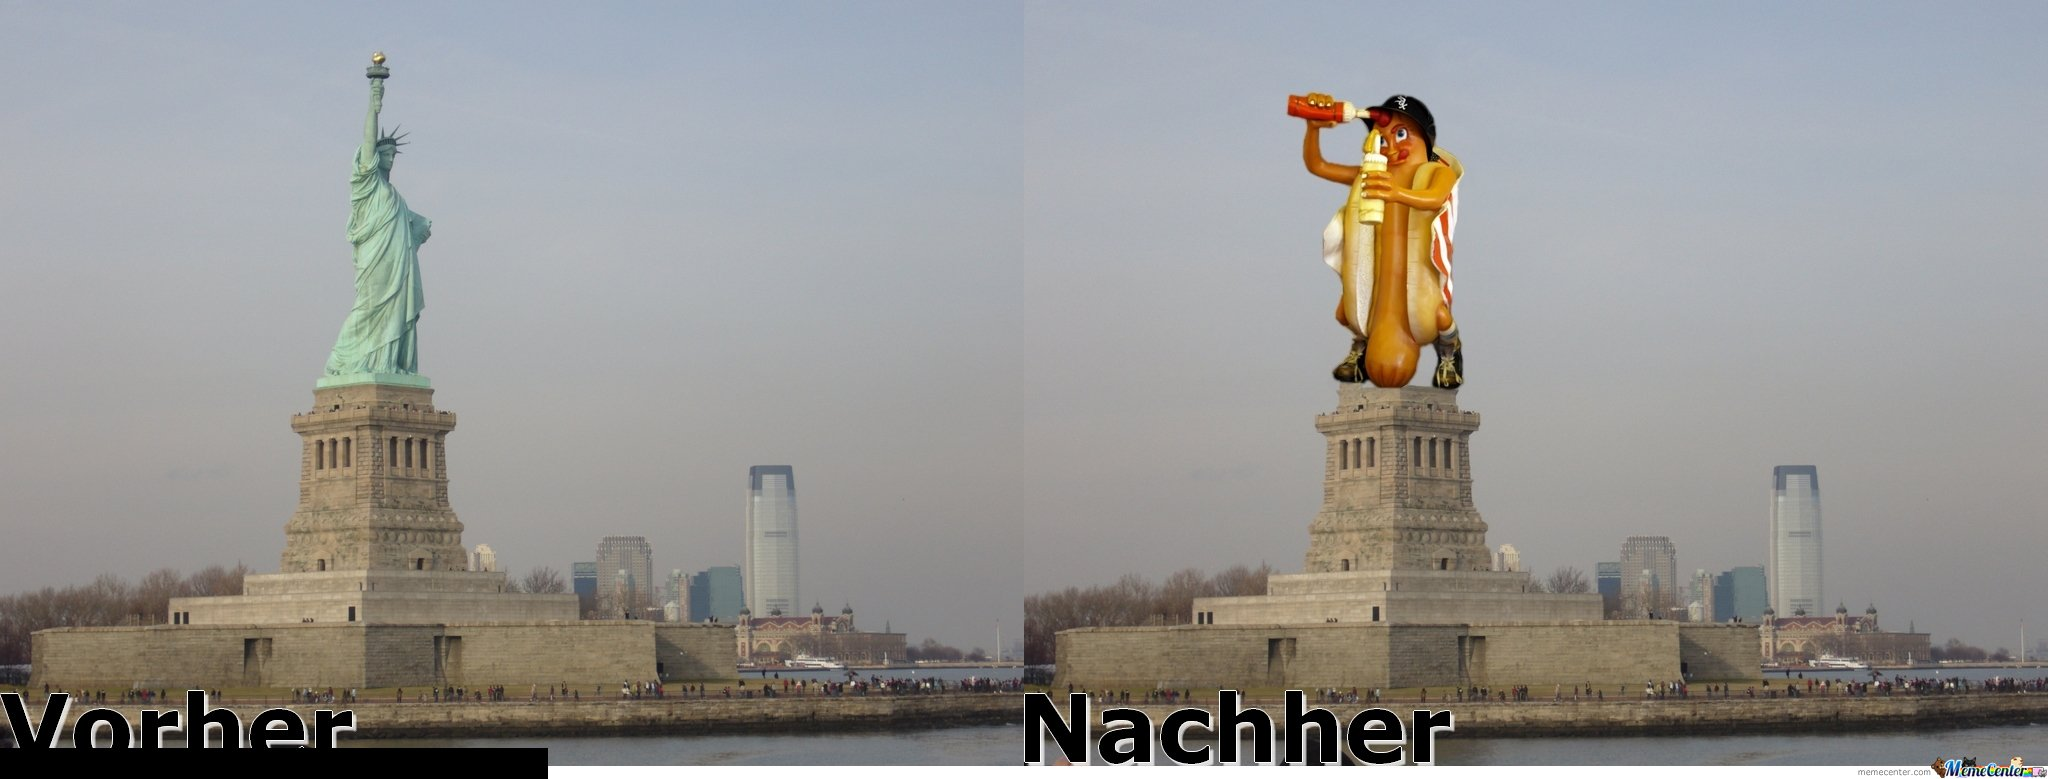 Statue Of Liberty In The Future